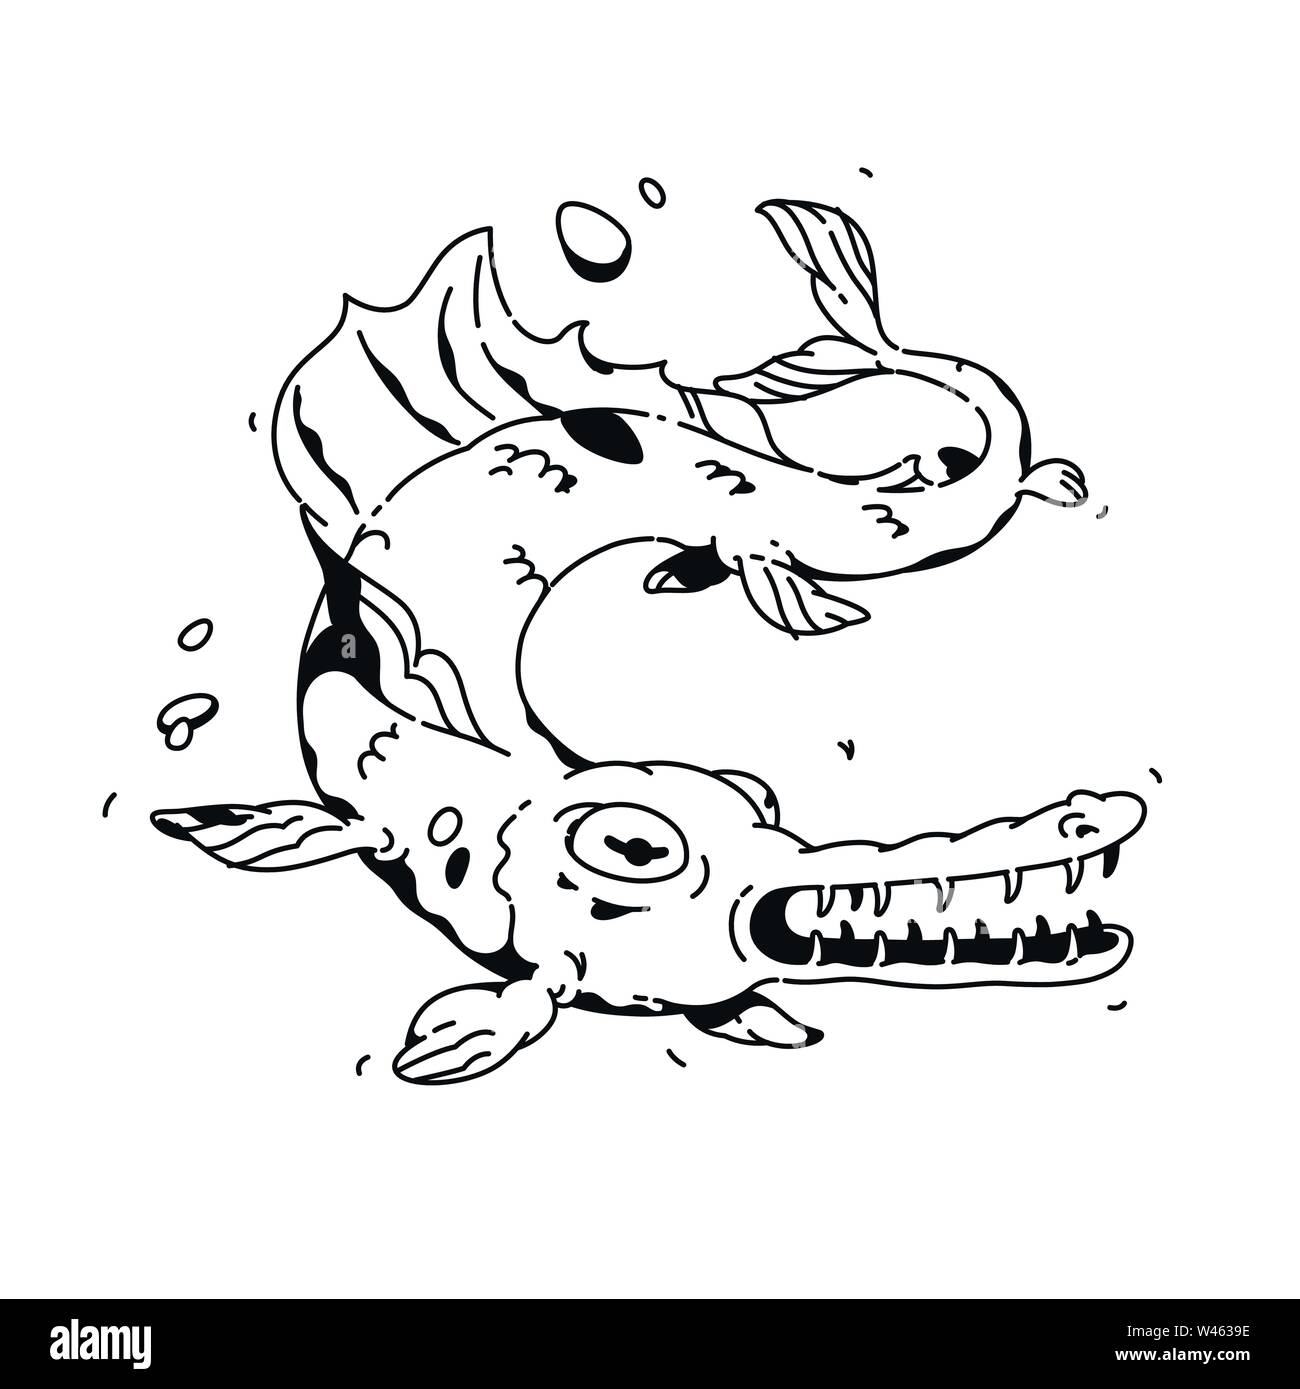 Illustration of a cartoon fish. Vector. Linear drawing for a tattoo. Corporate mascot for the company. Illustration for t-shirt. A terrible monster fi - Stock Image